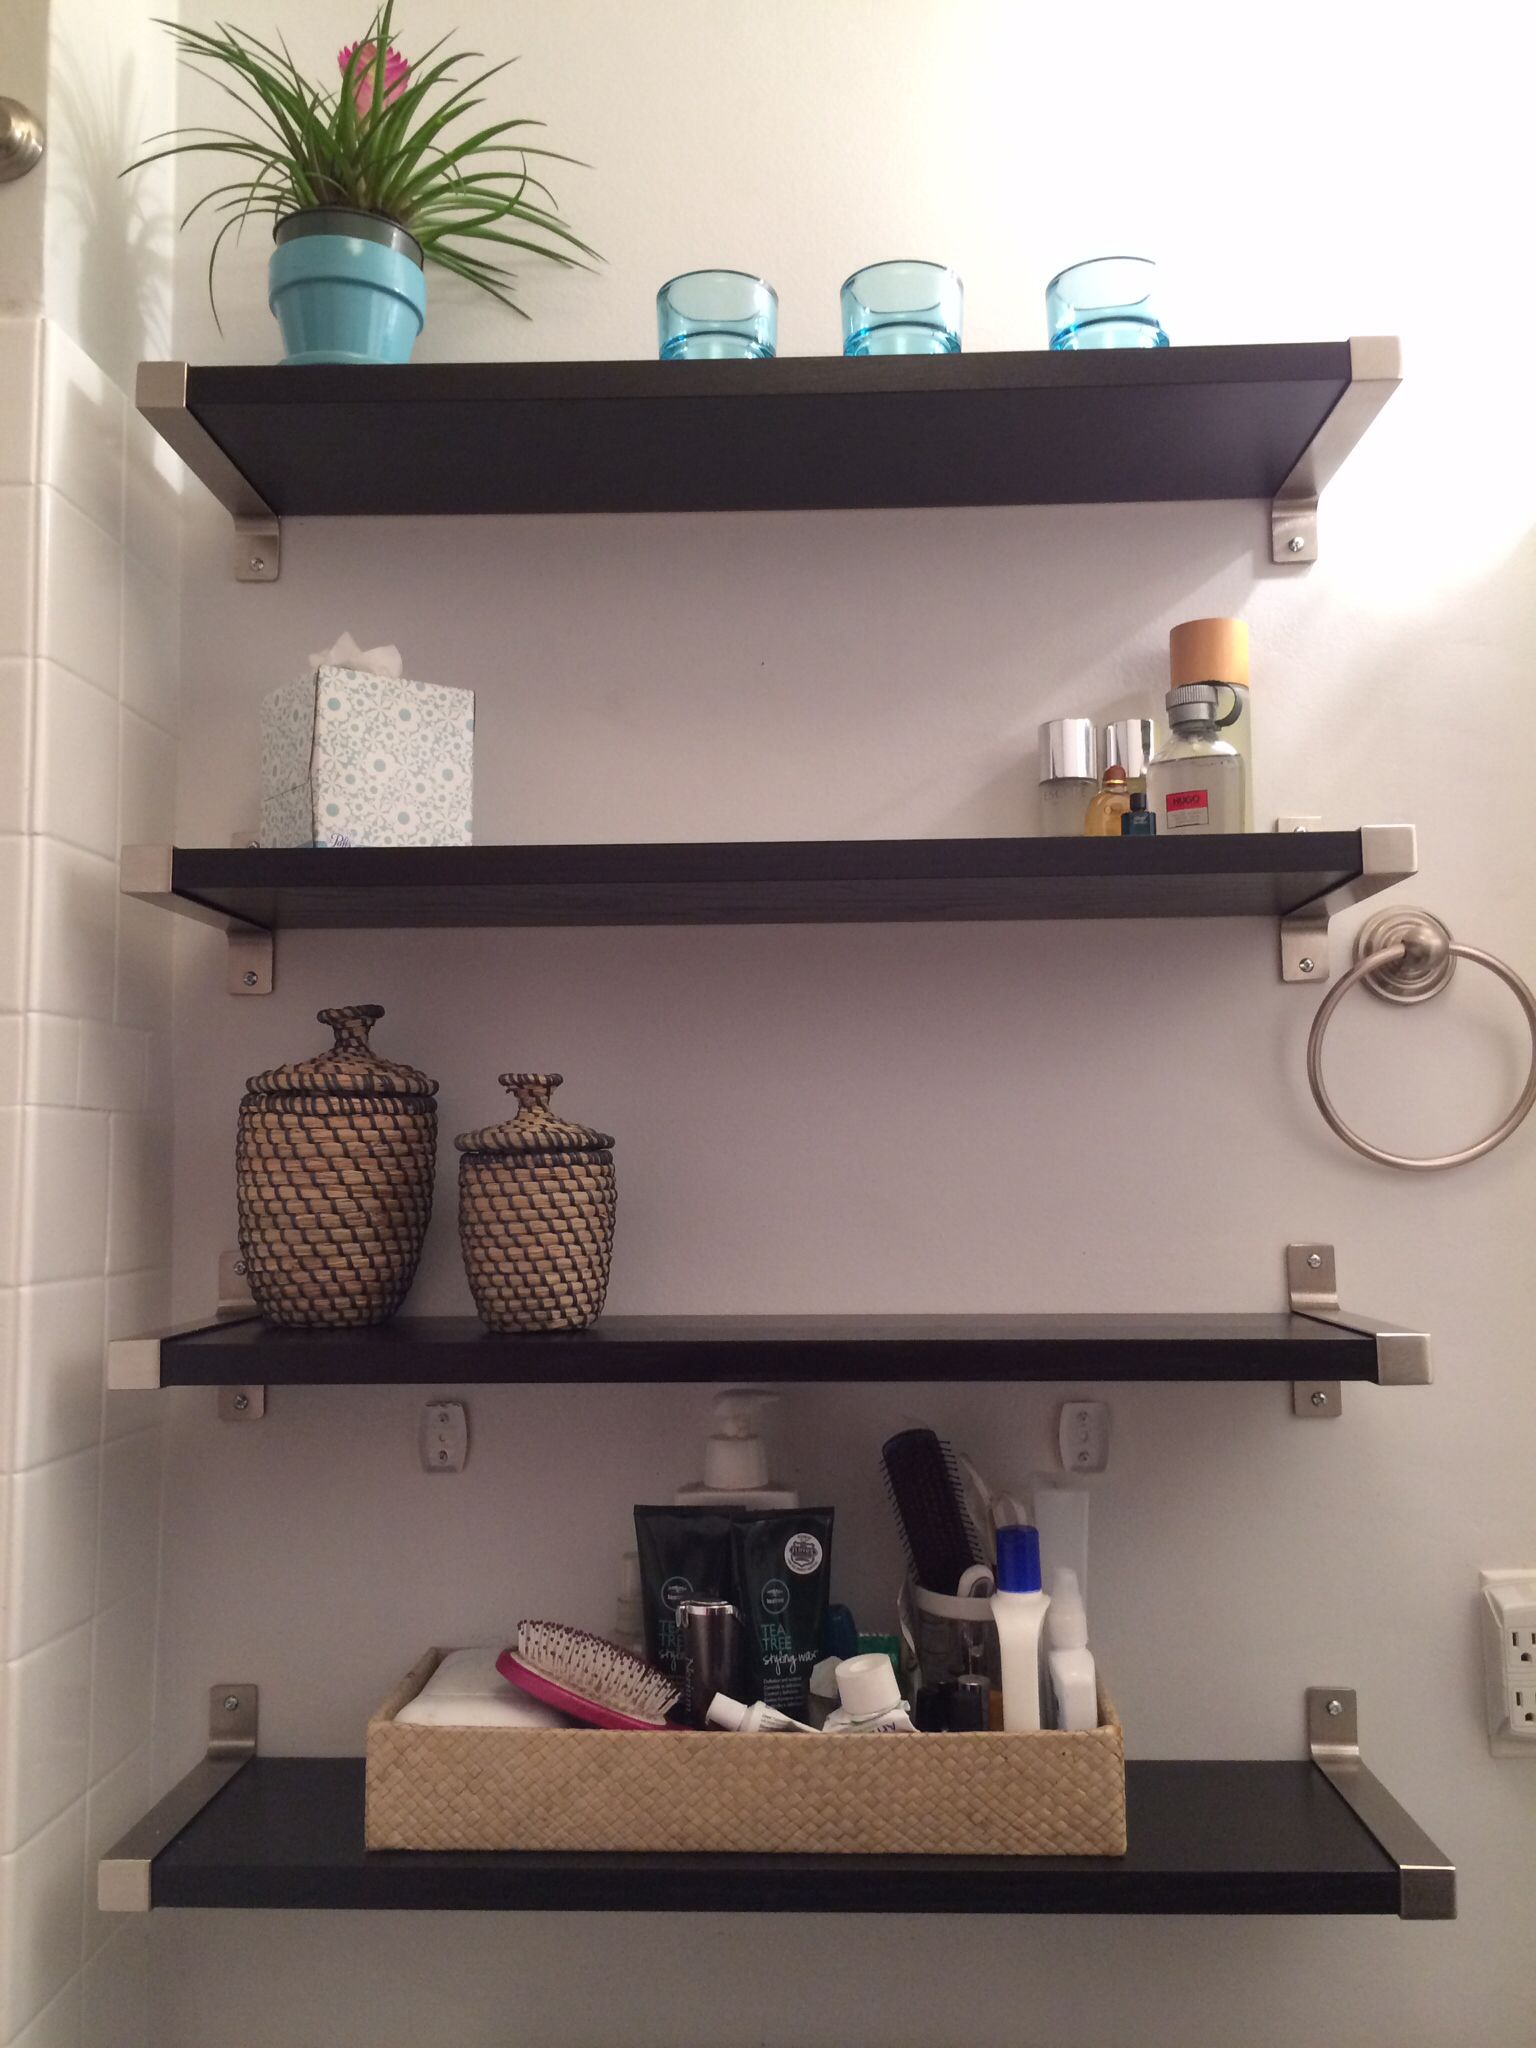 Small bathroom solutions ikea shelves bathroom pinterest for Compact bathroom solutions